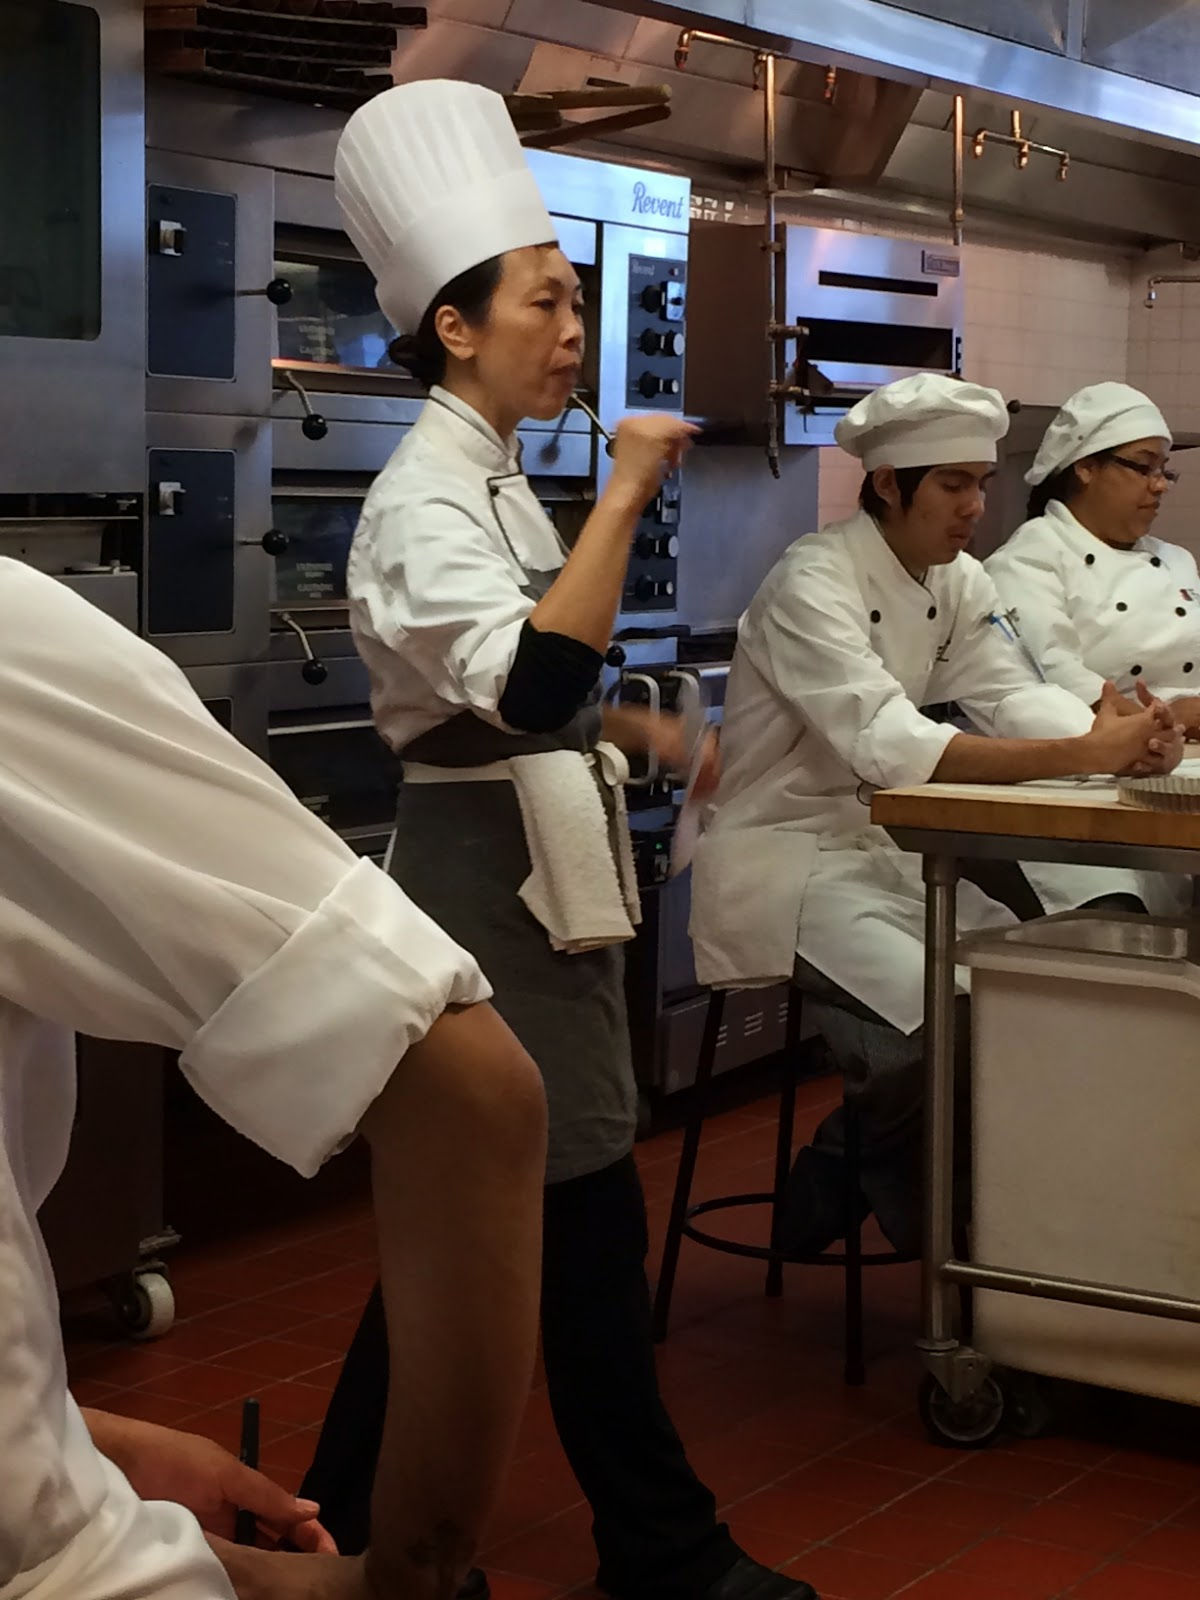 Chocolate Cream Pie With Tough Culinary Love On The Side From Pastry Chef Instructor Tina Luu